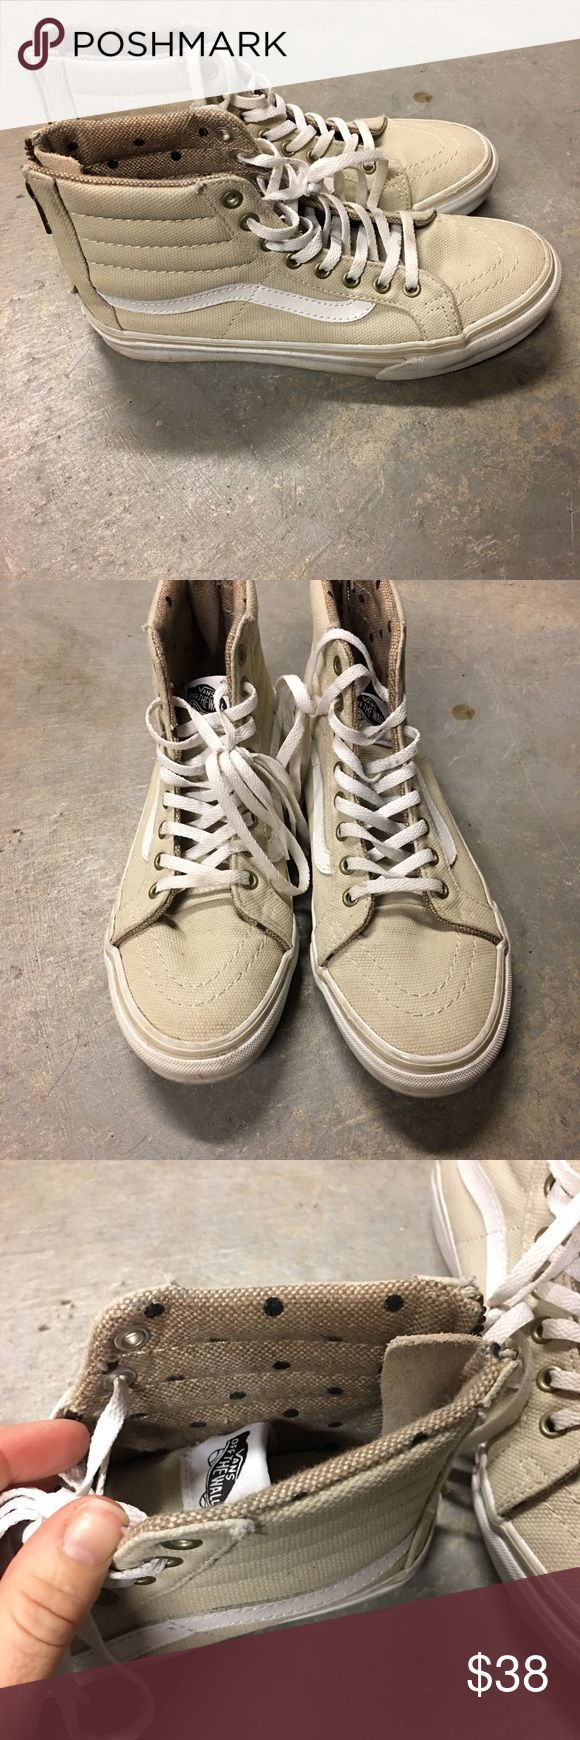 I just added this listing on Poshmark: Khaki vans high tops with zippers and polka dots. #shopmycloset #poshmark #fashion #shopping #style #forsale #Vans #Shoes